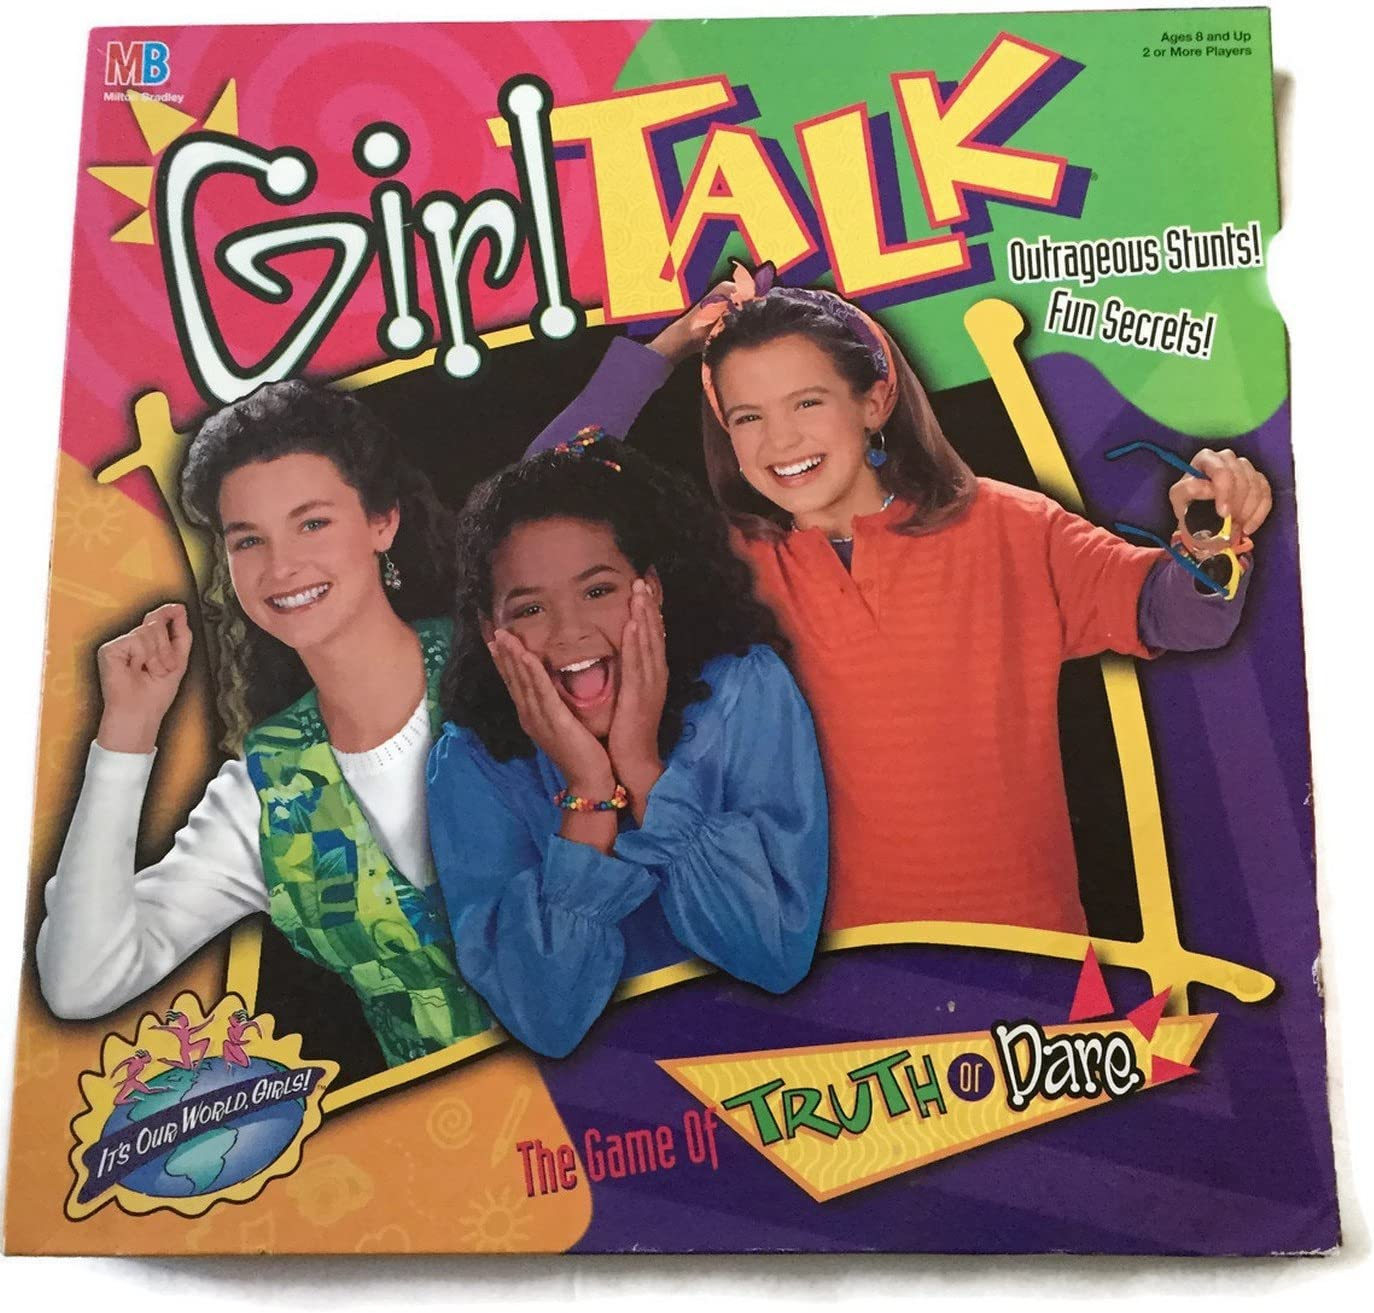 Girl 現品 Talk: お求めやすく価格改定 The Game of or 1995 Dare Edition Truth